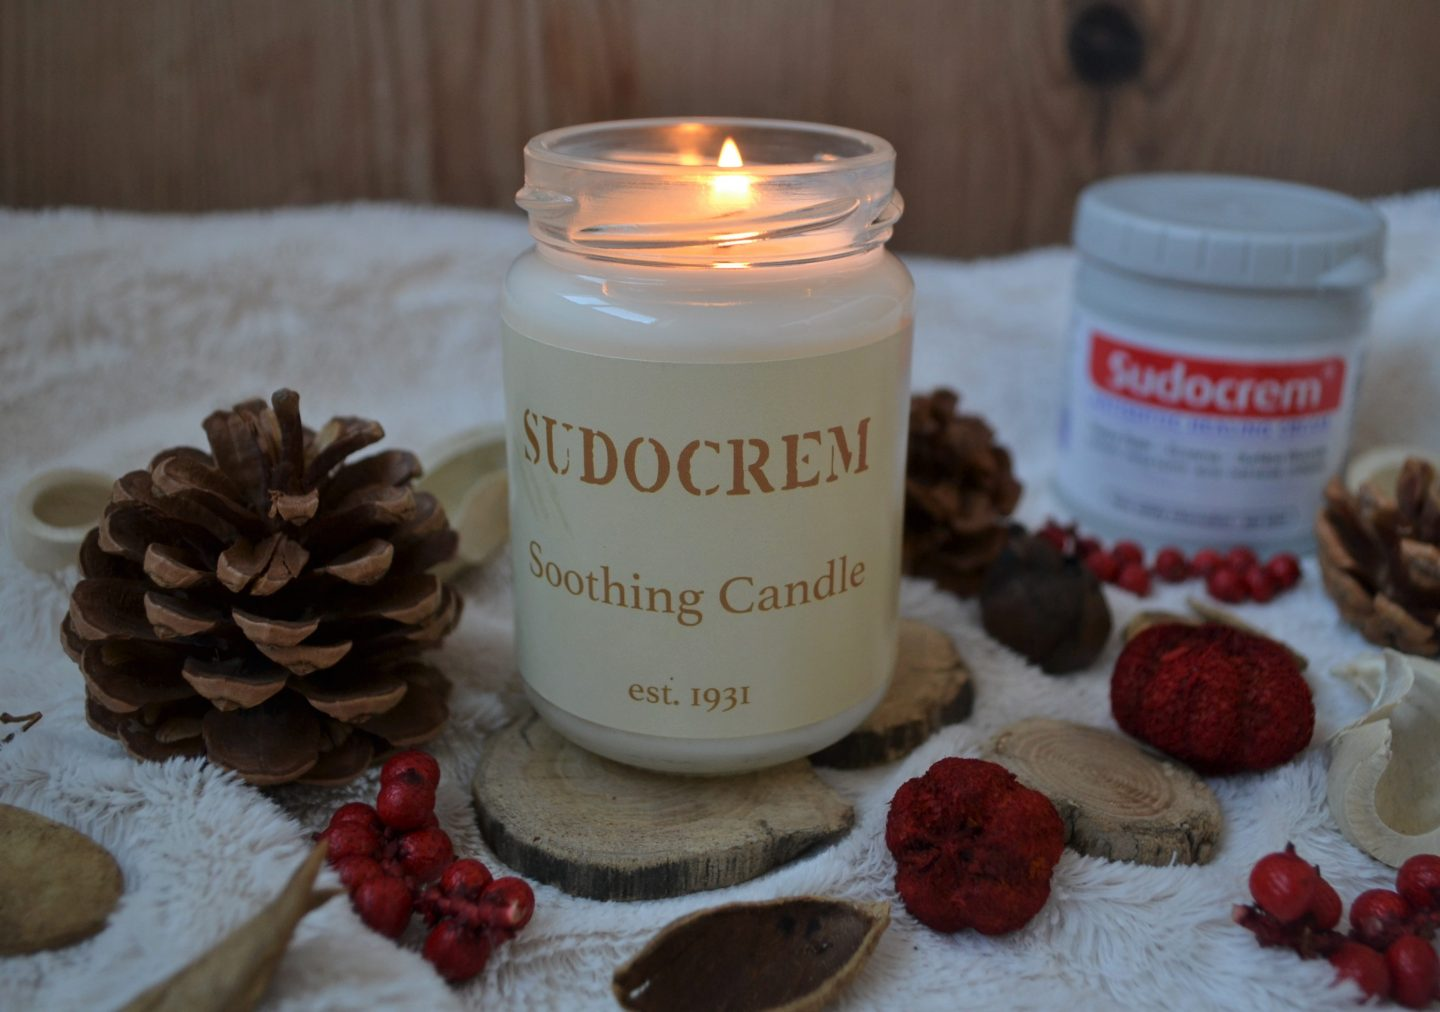 Limited edition Sudocrem candle giveaway